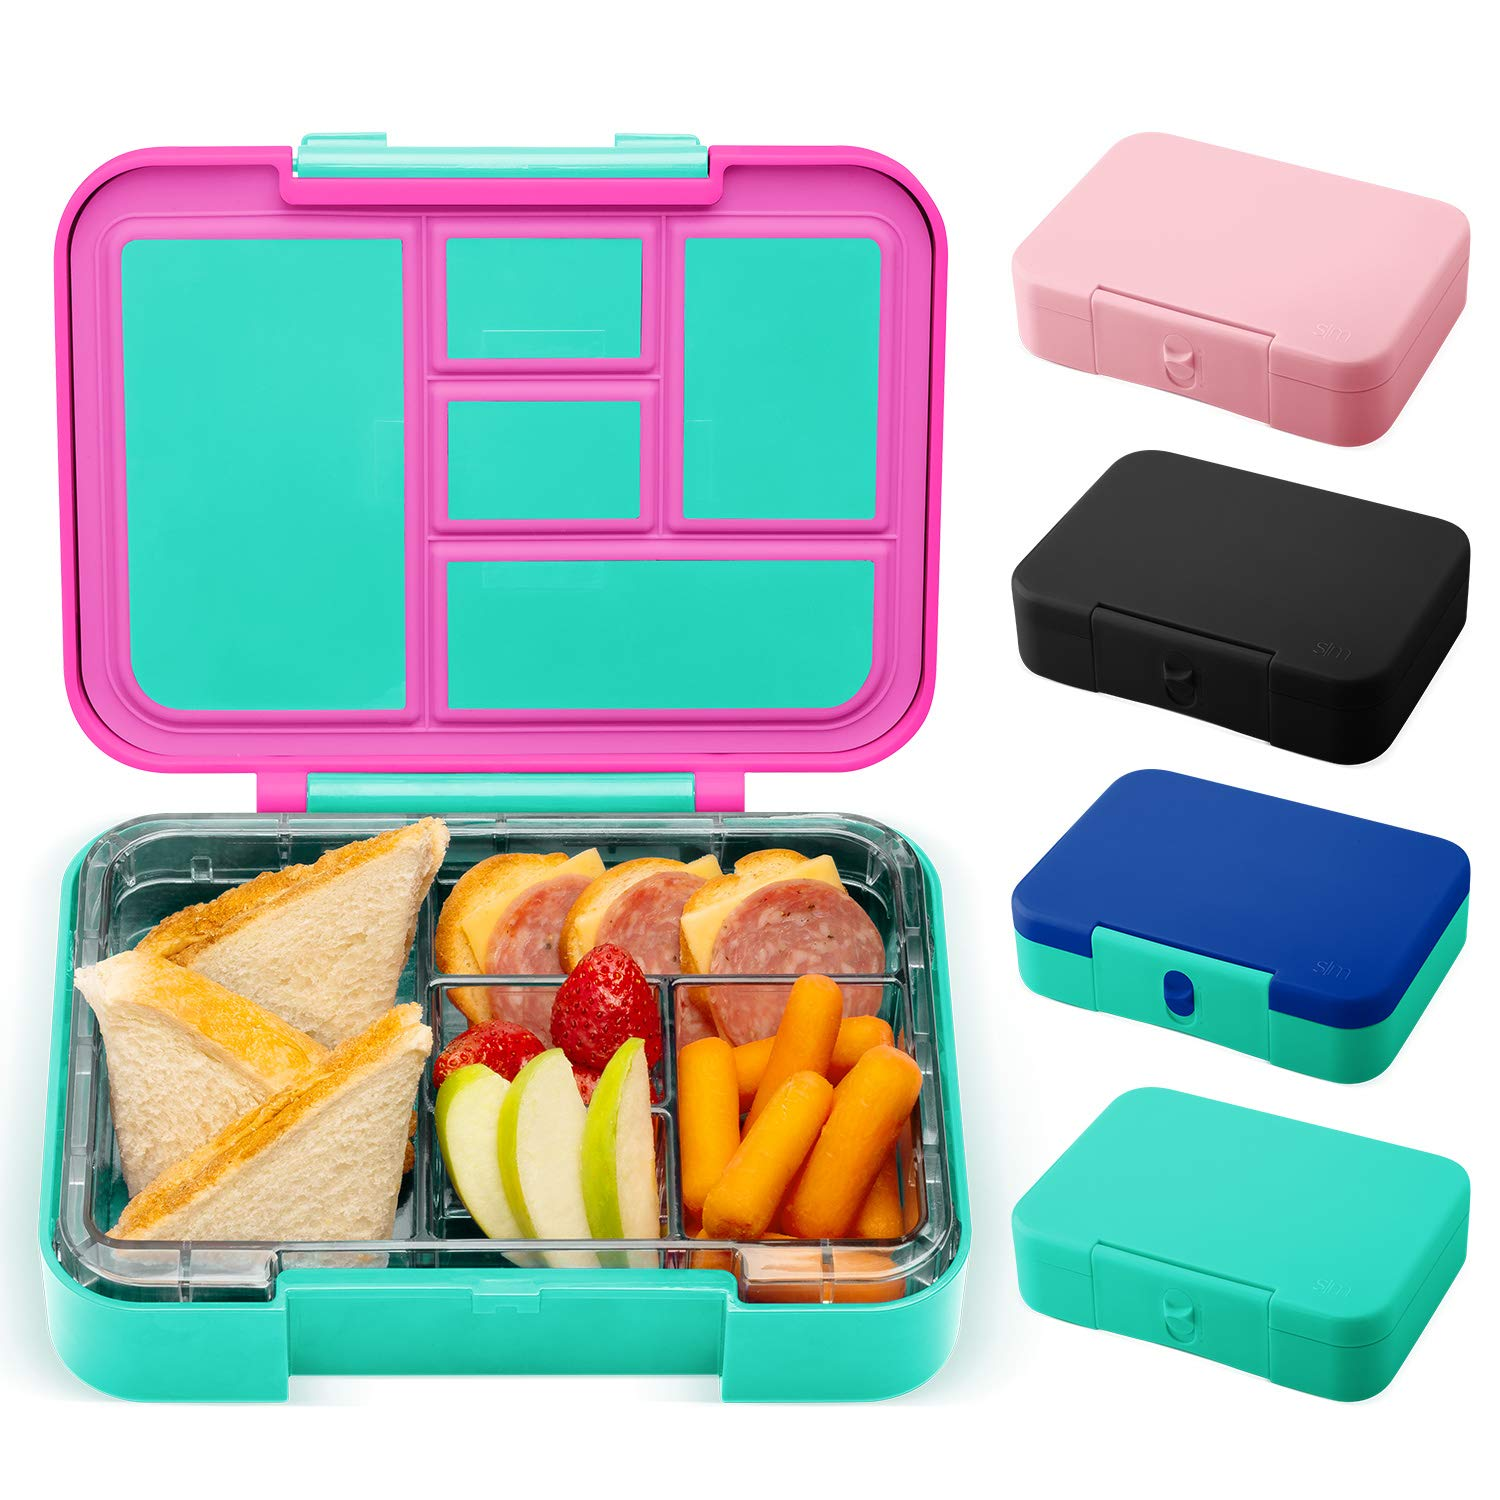 Simple Modern Porter Bento Lunch Box for Kids - Leakproof Divided Pink Container with 5 compartments for Toddlers, Adults, Men, and Women Color Blocked: Sorbet